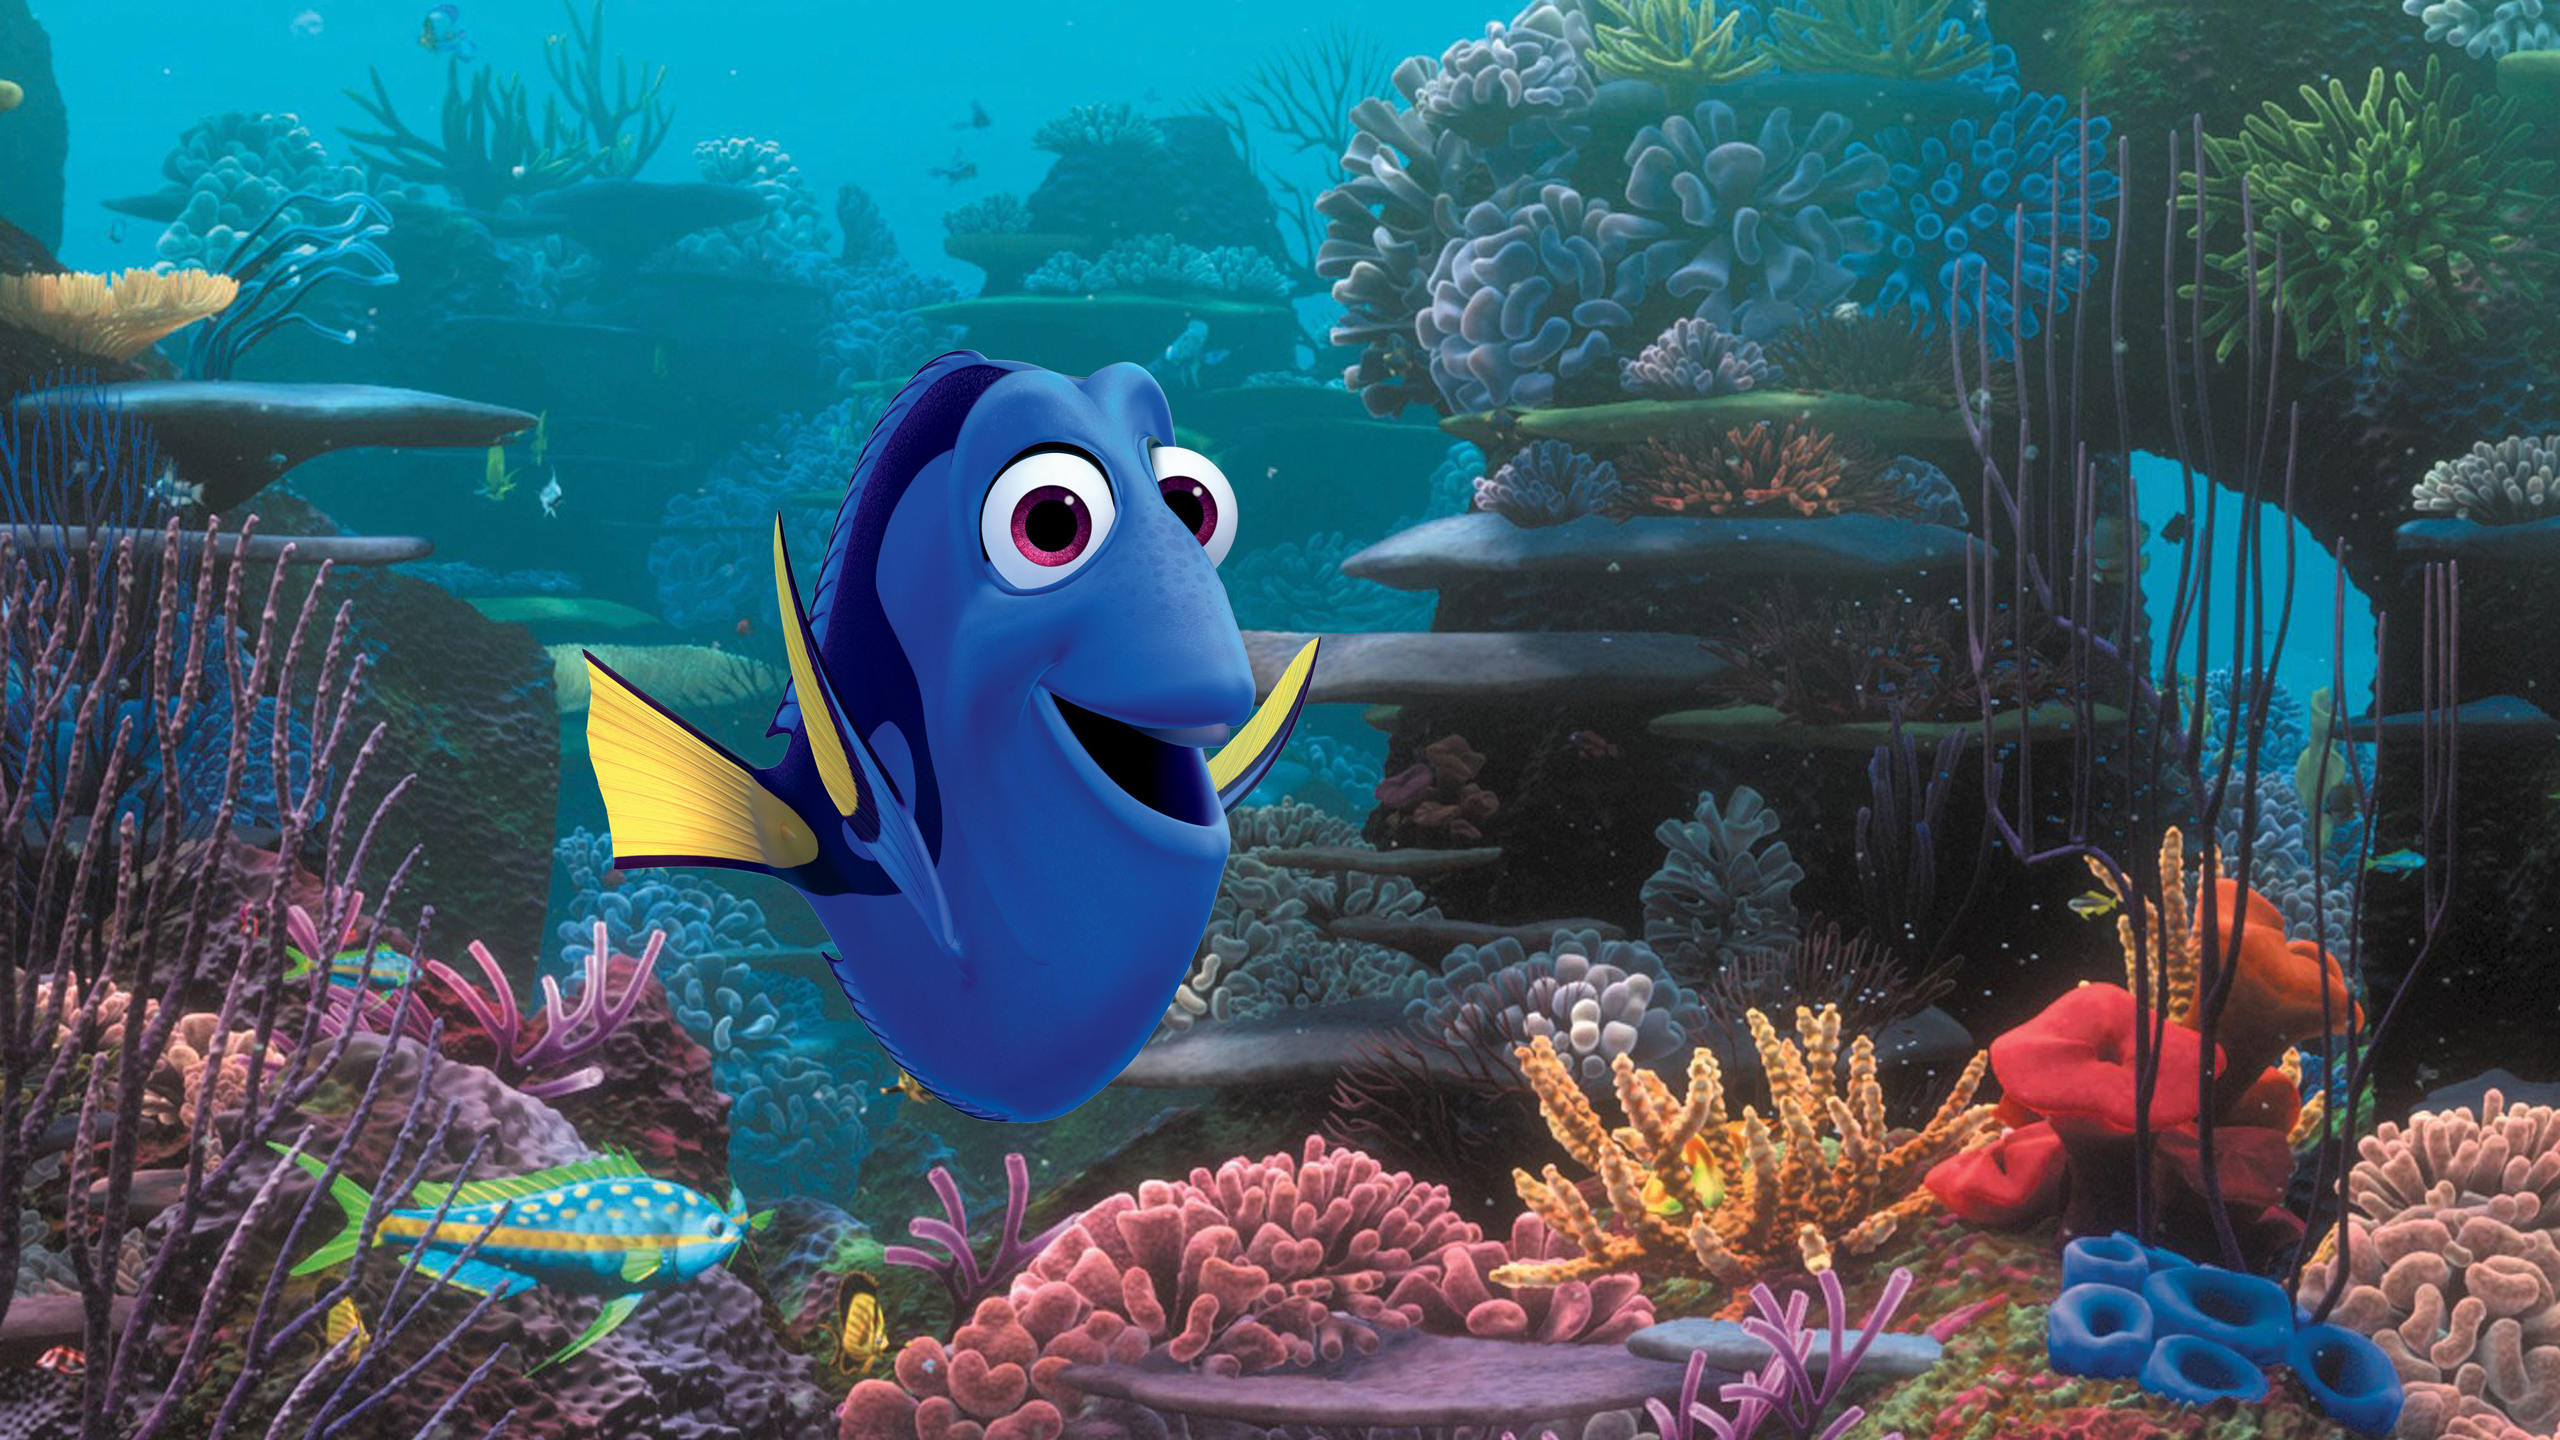 Dory, voiced by Ellen DeGeneres, in a scene from the Pixar sequel  Finding Dory.